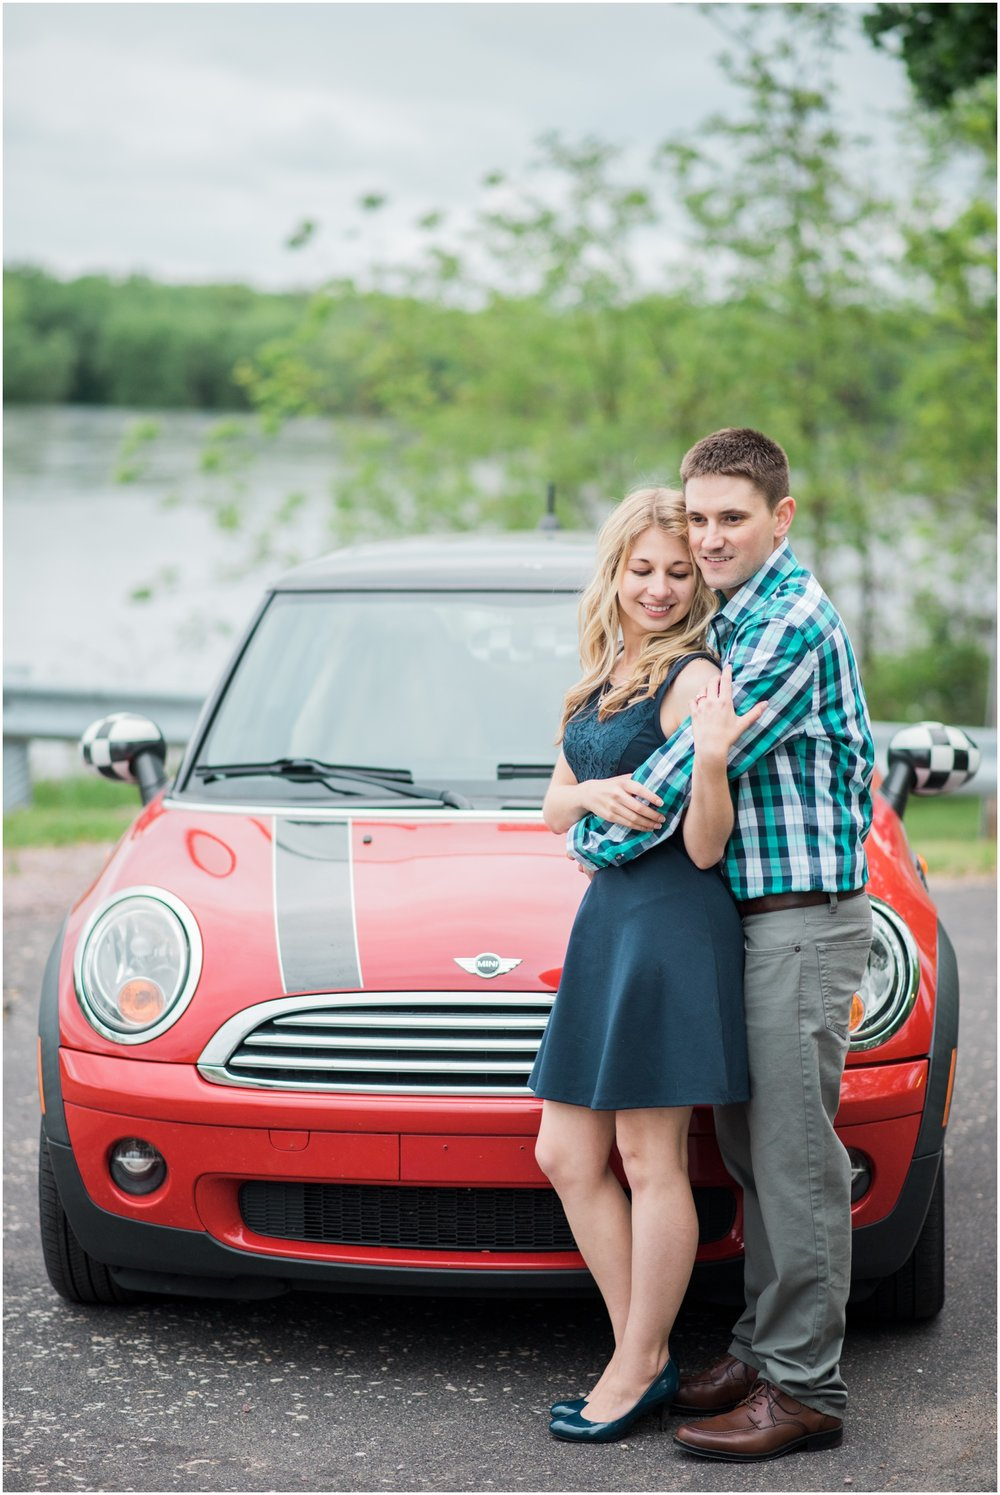 Paquette_Park_Portage_WI_Engagement_Photos_Heather_and_Derek_0034.jpg